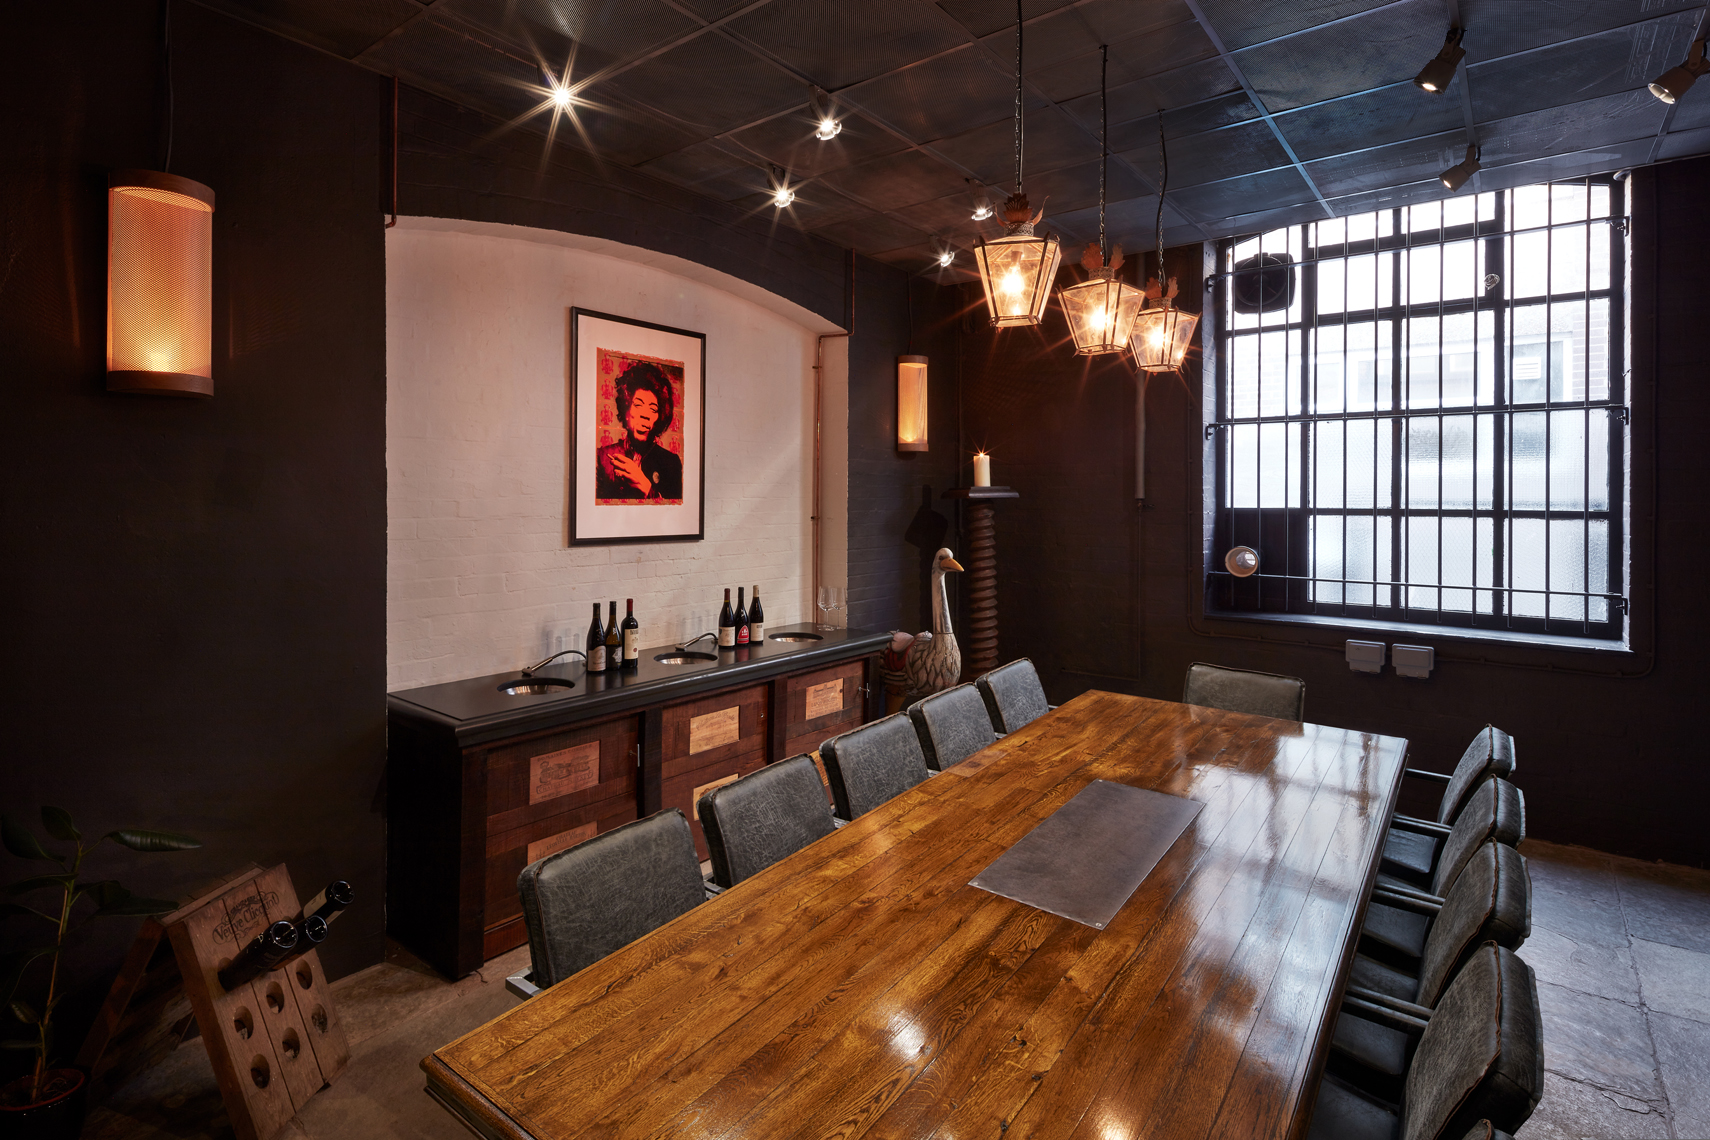 Roberson-Wine_Architecture-Interiors_HR0025